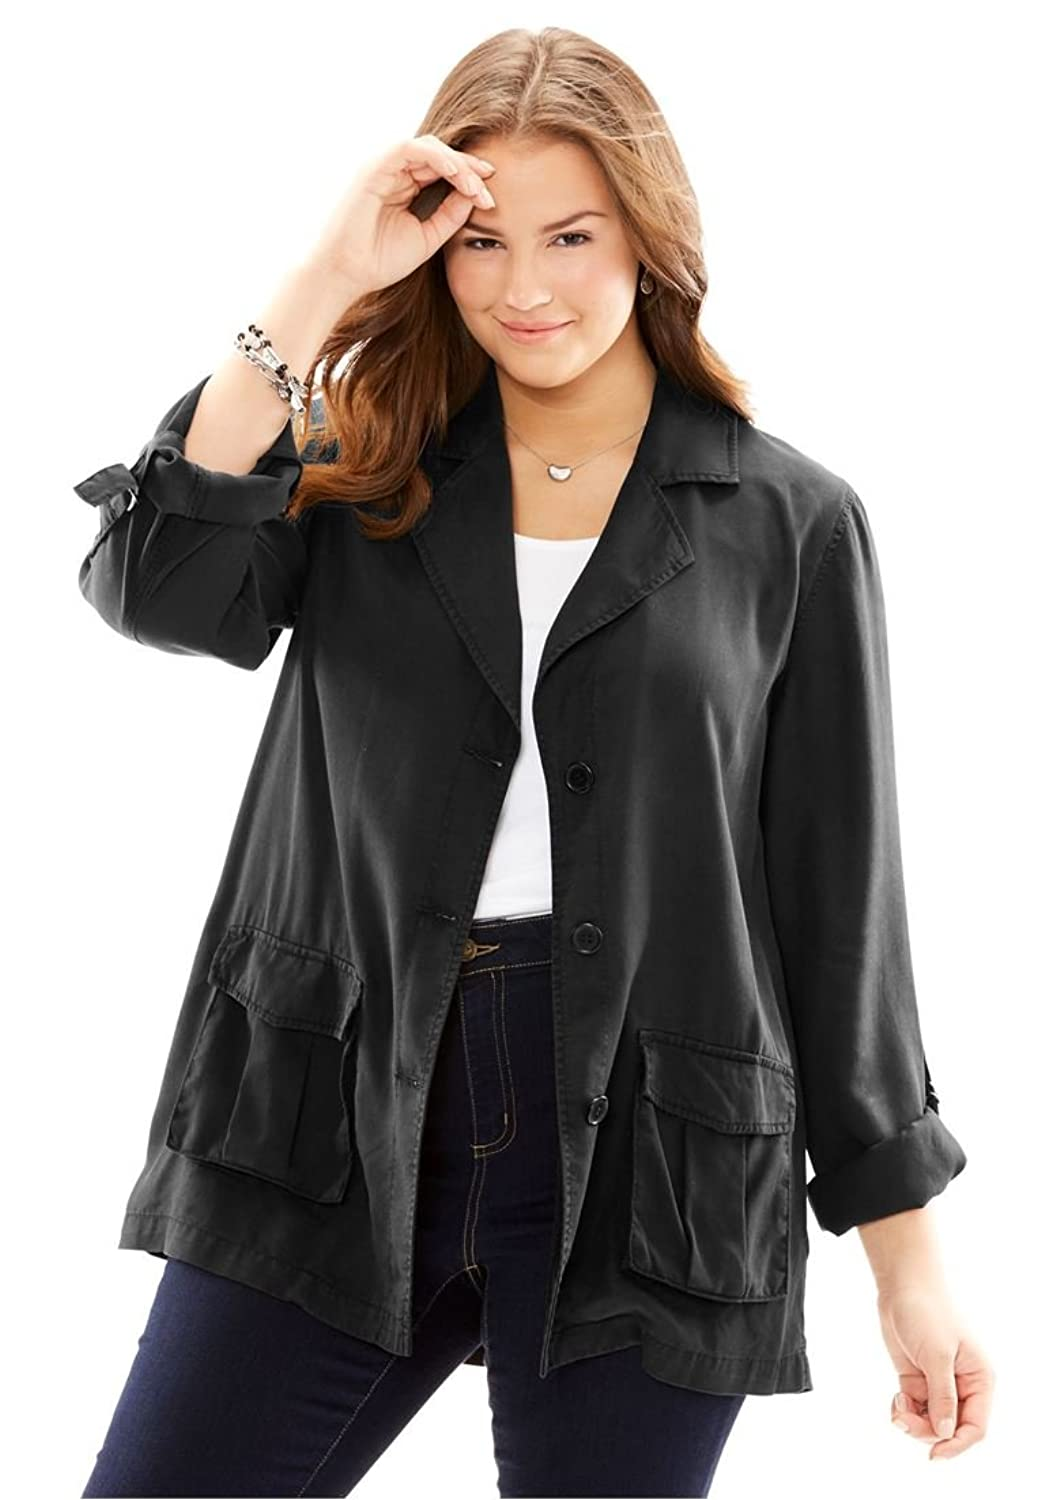 e8a73c1611981 Woman Within Women s Plus Size Lightweight Utility Jacket ...